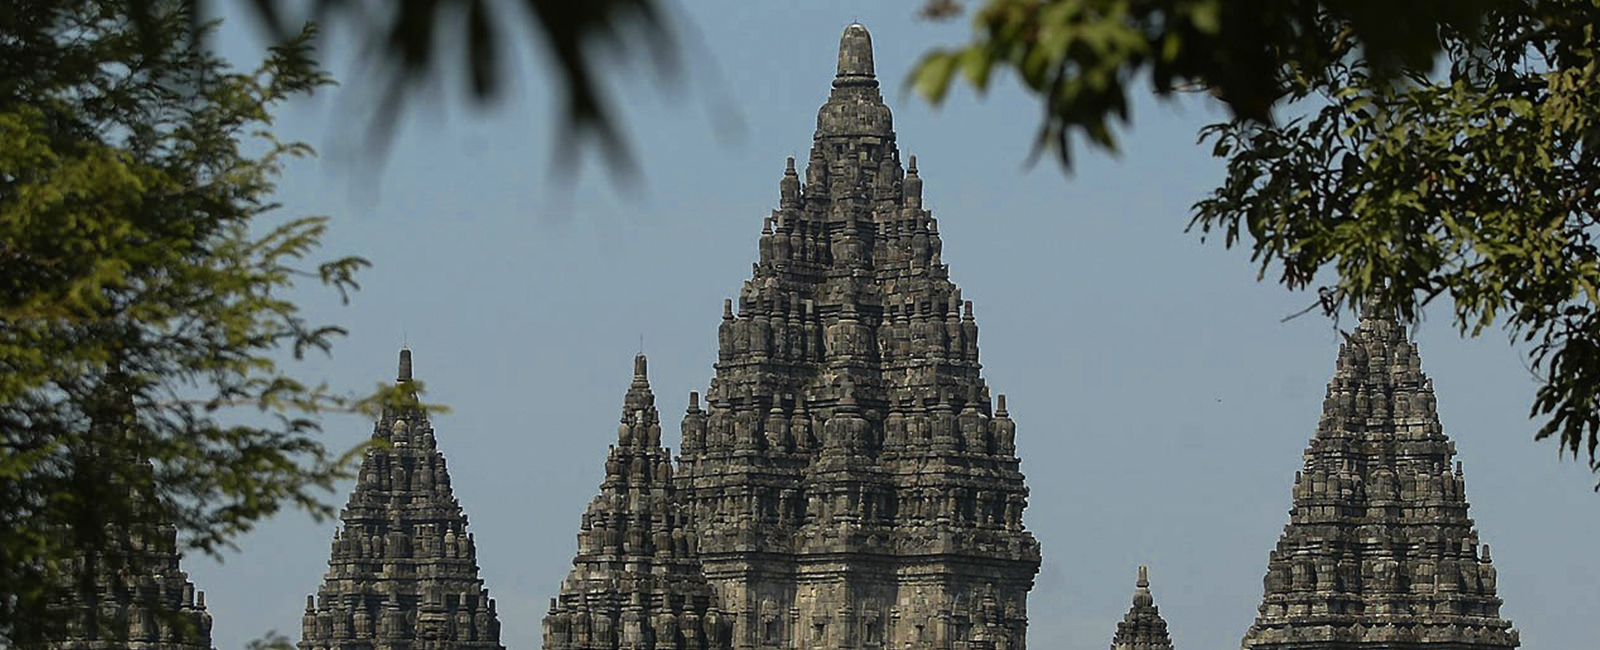 The ancient temples of Java